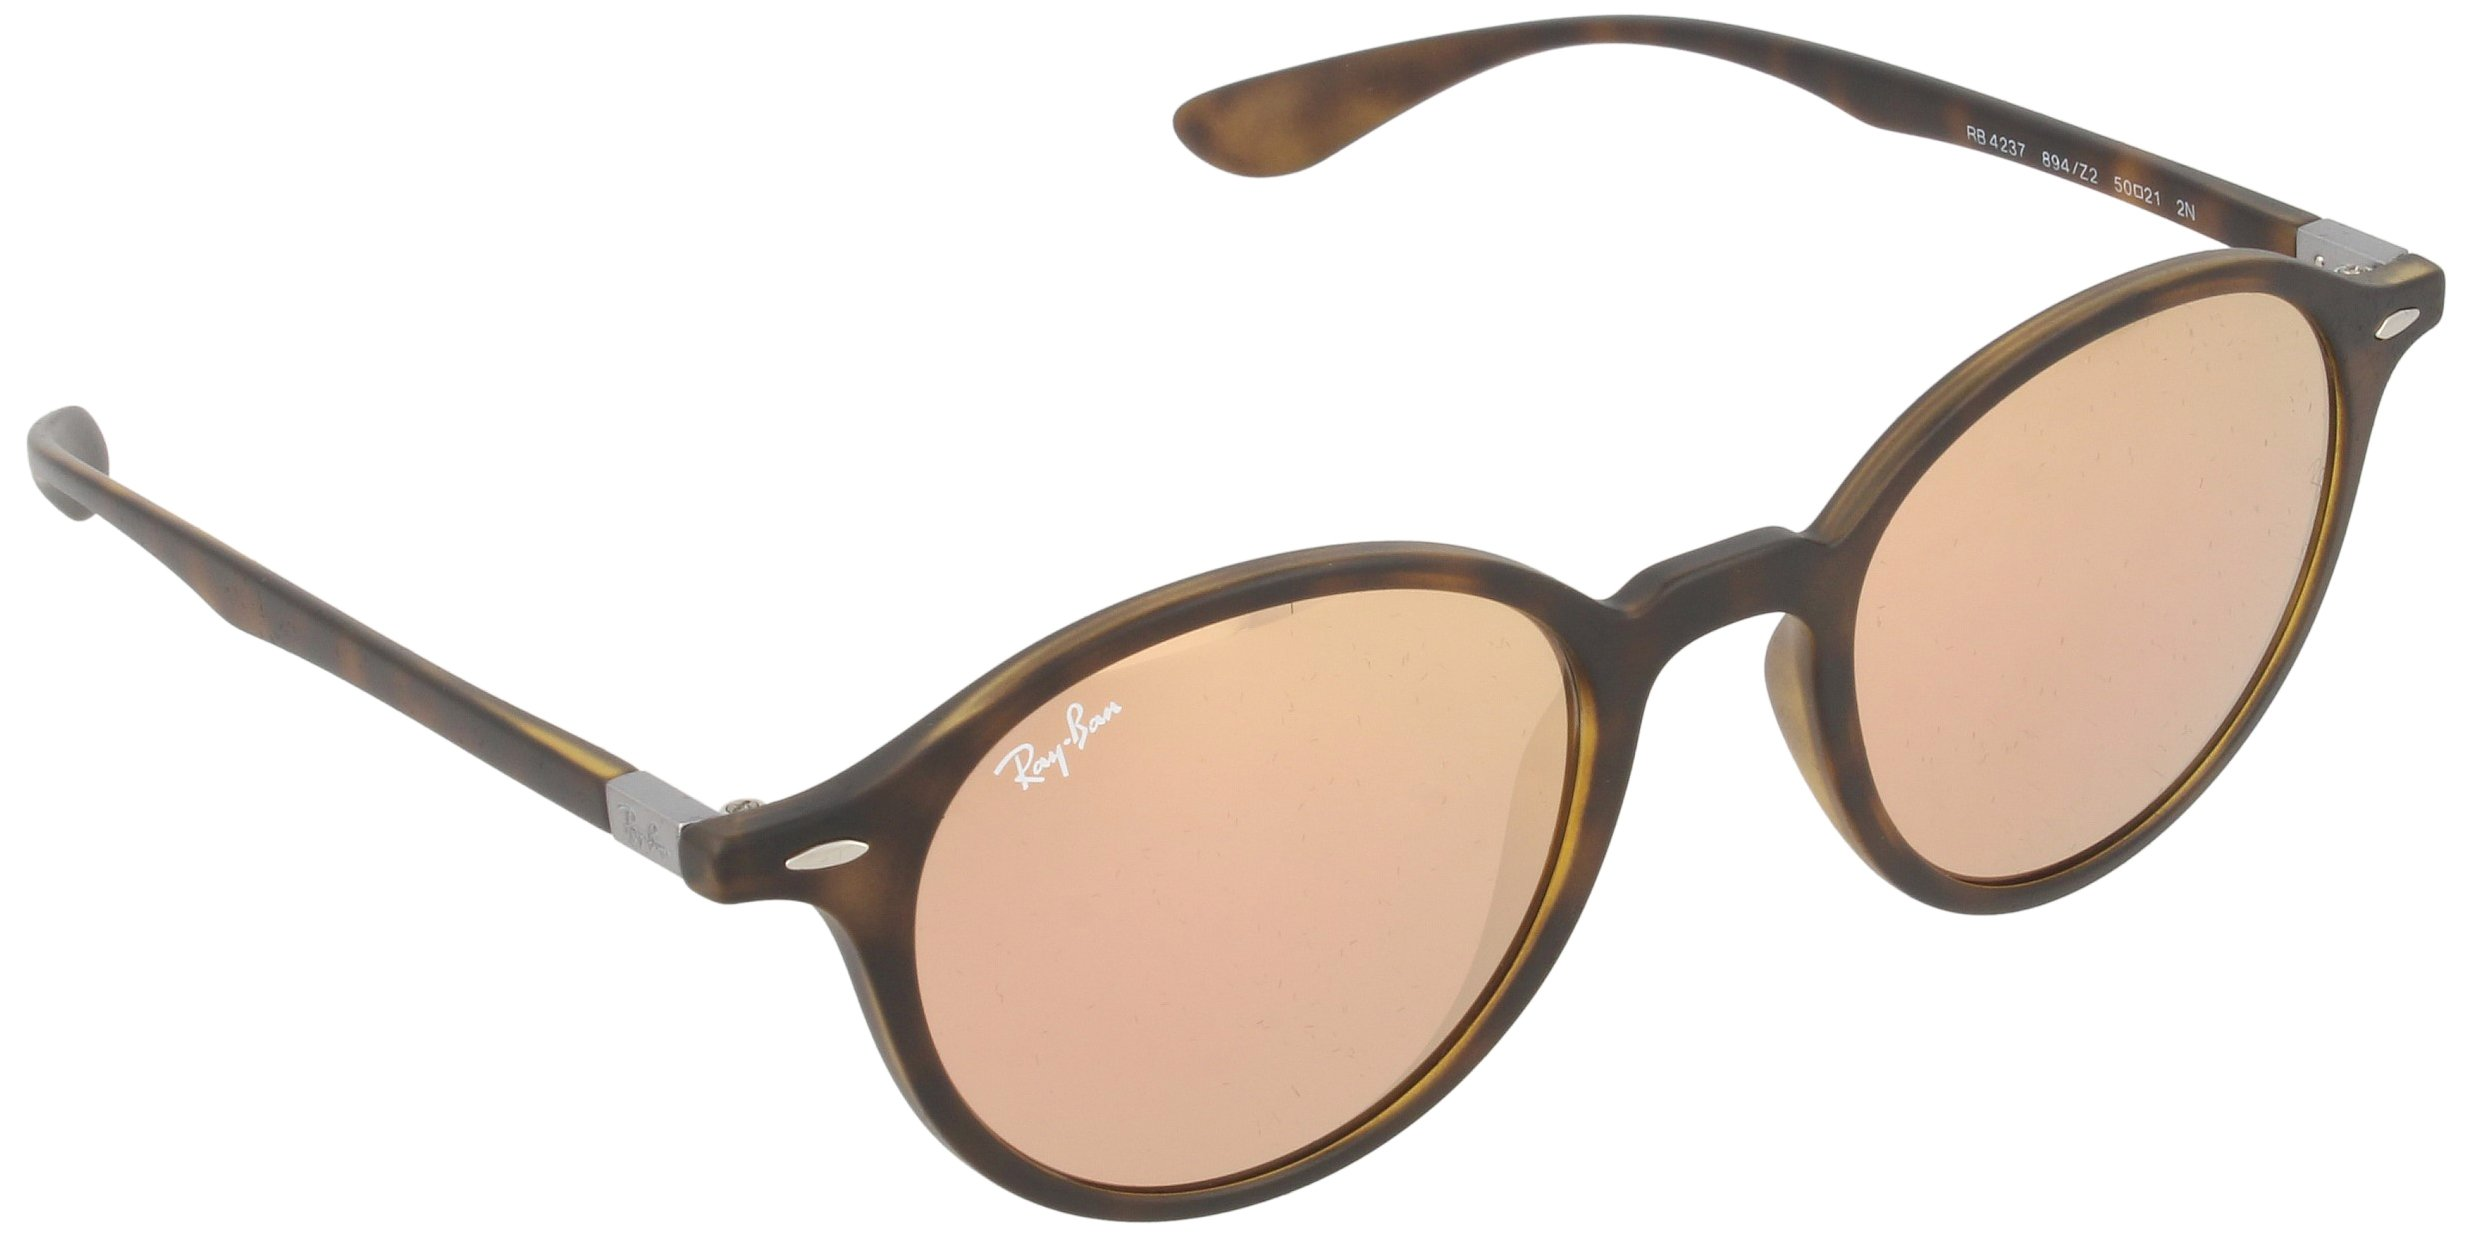 Ray-Ban INJECTED UNISEX SUNGLASS - MATTE HAVANA Frame LIGHT BROWN MIRROR PINK Lenses 50mm Non-Polarized